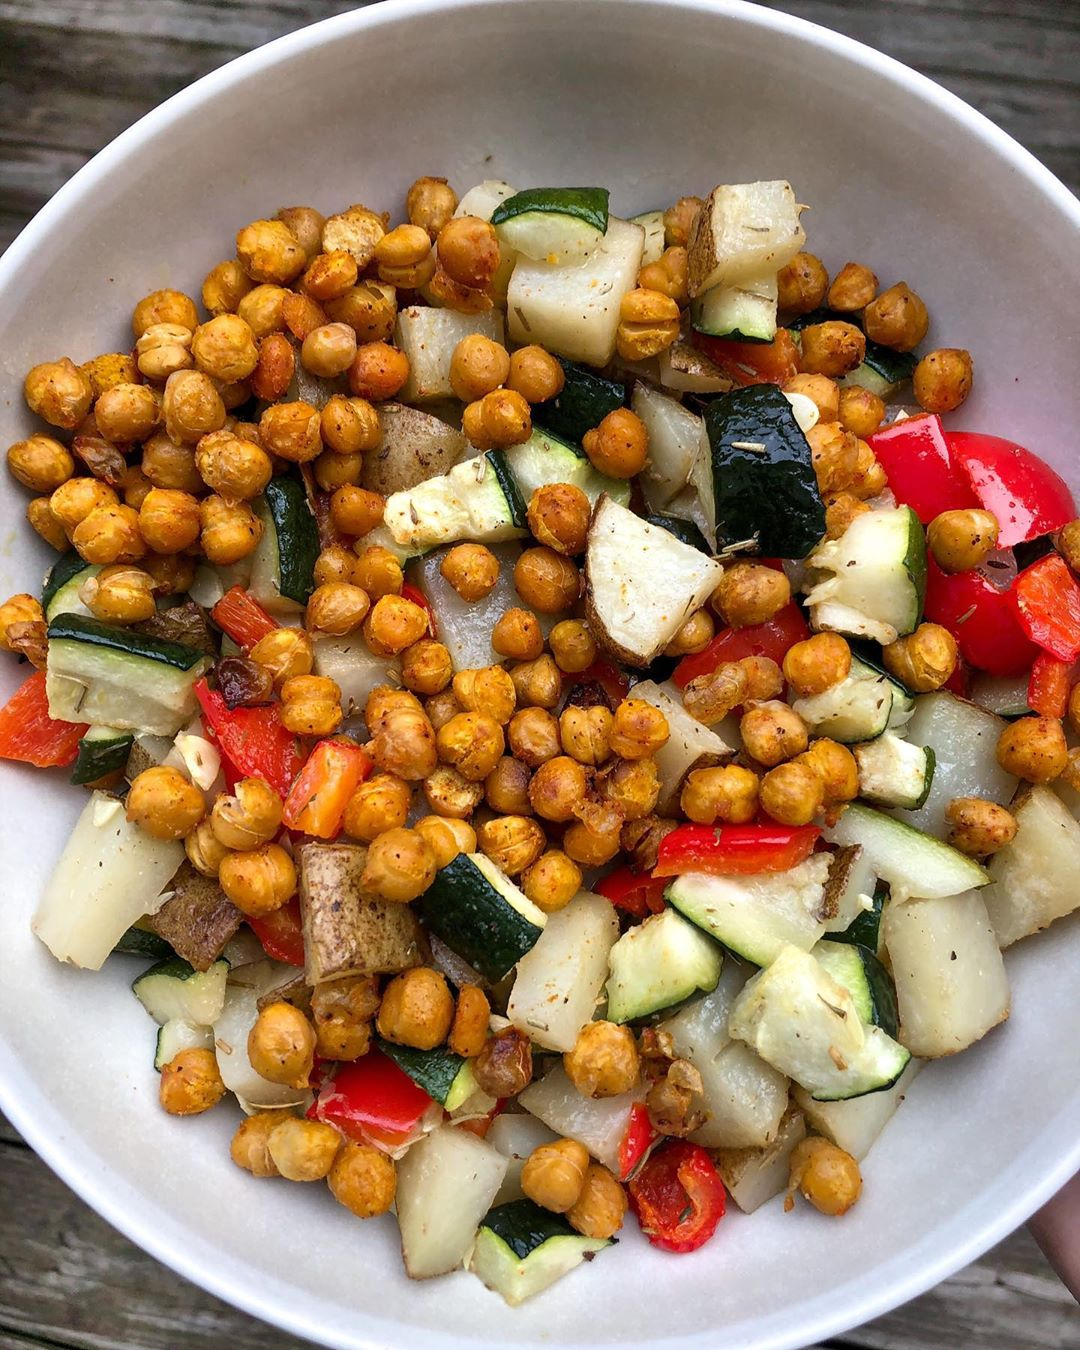 my dinner tonight was this fresh roasted veggie and chickpea multip img 0 b69aa548